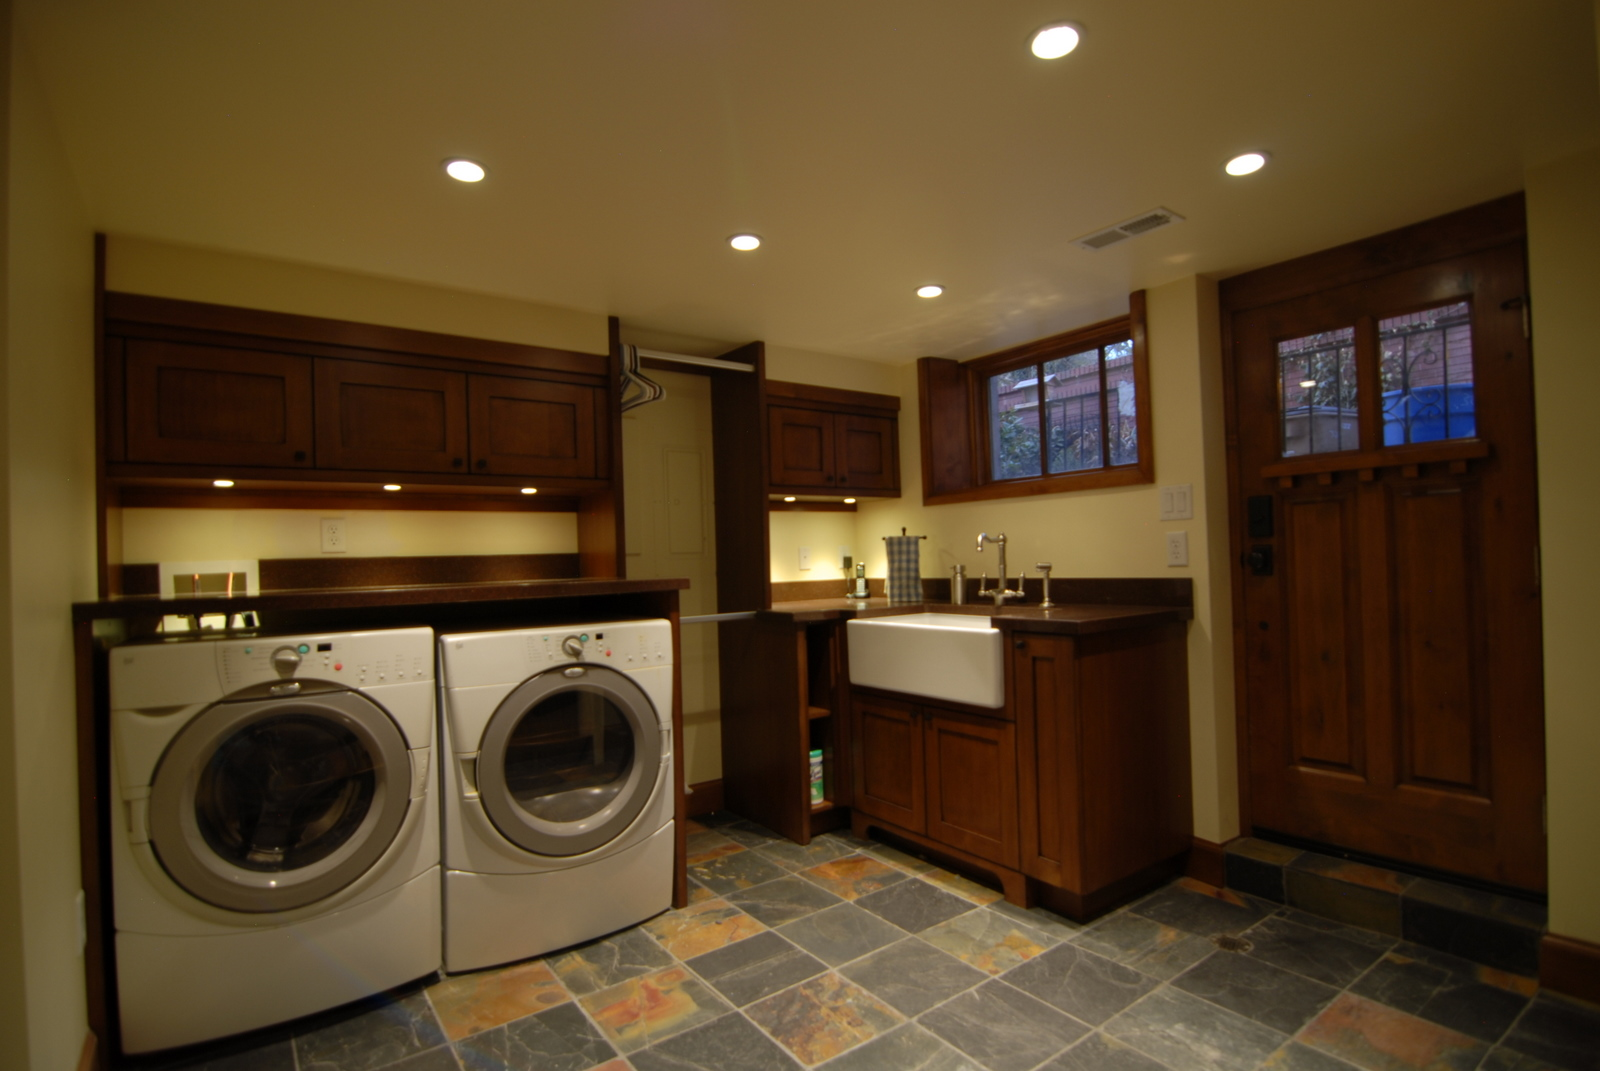 enzy living laundry room basement in a craftsman home